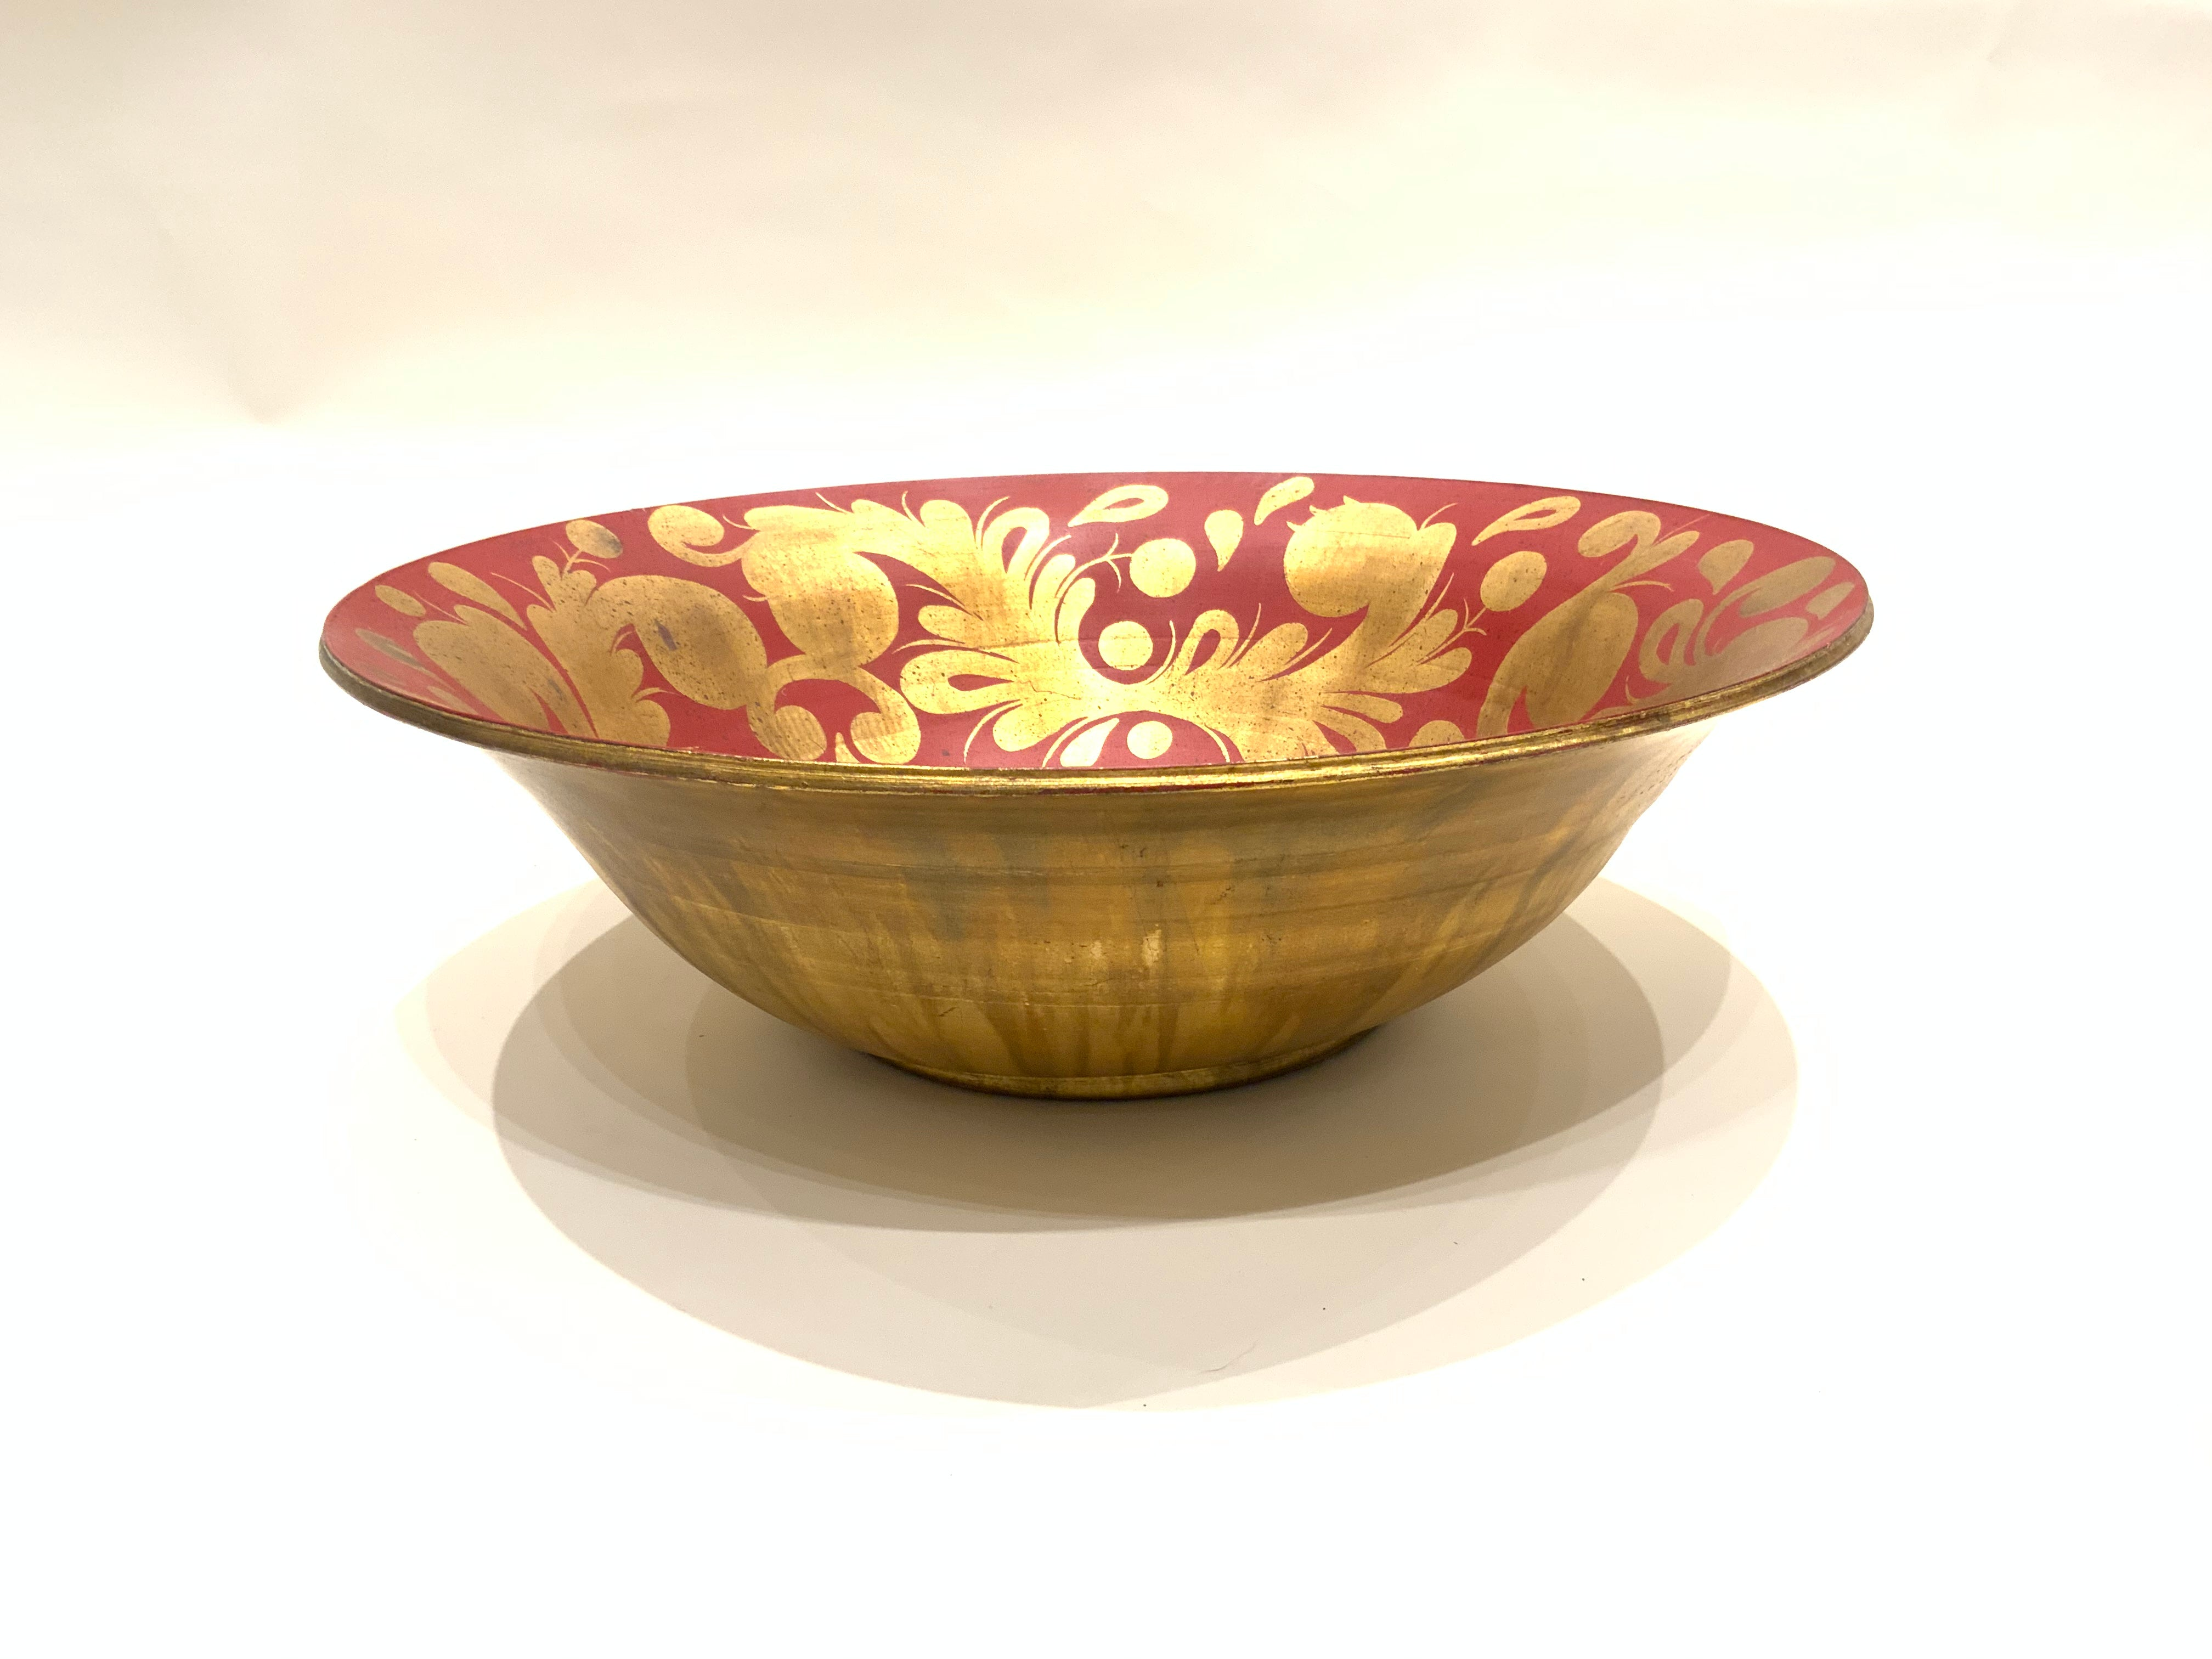 Burts Cason Handmade Red & Gold Bowl